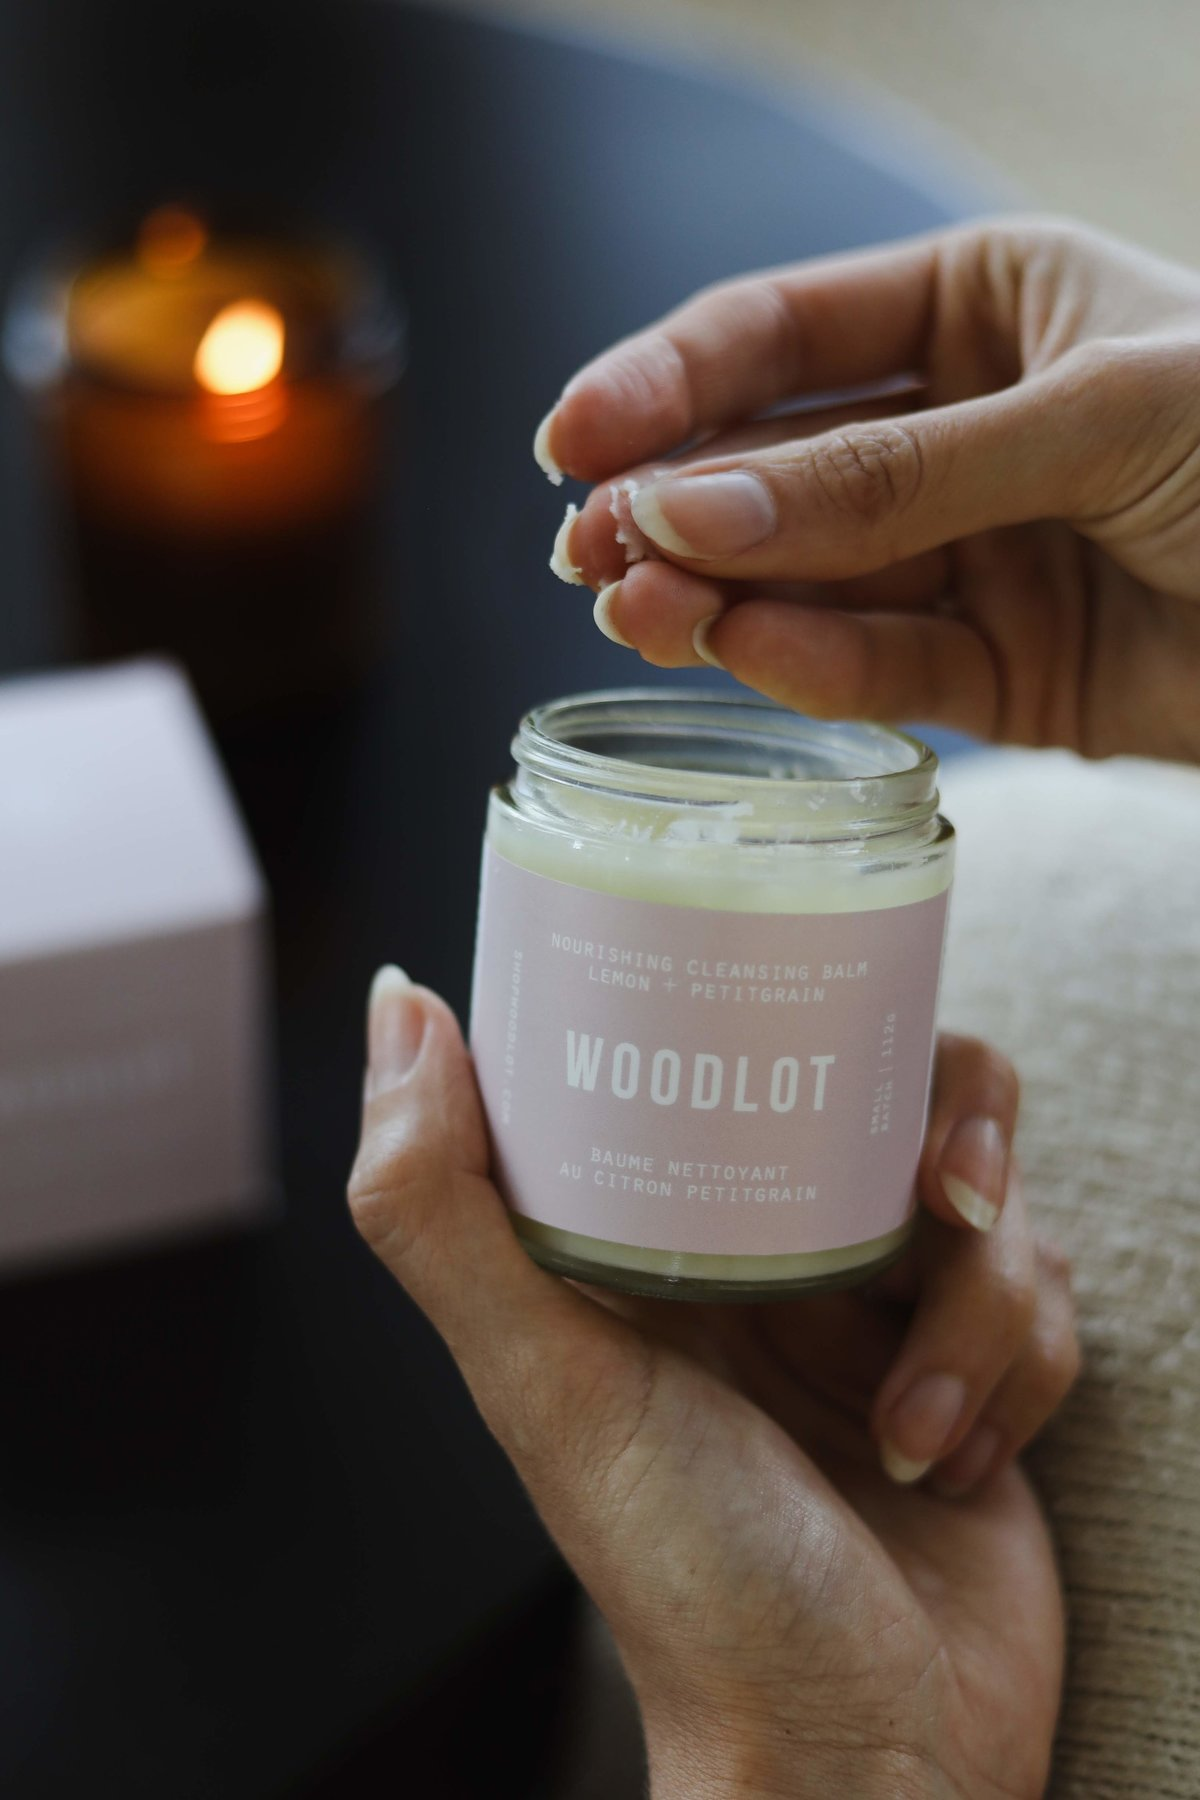 Woodlot Nourishing Cleansing Balm Makeup Remover by Travel and Lifestyle Blogger Alex Perry